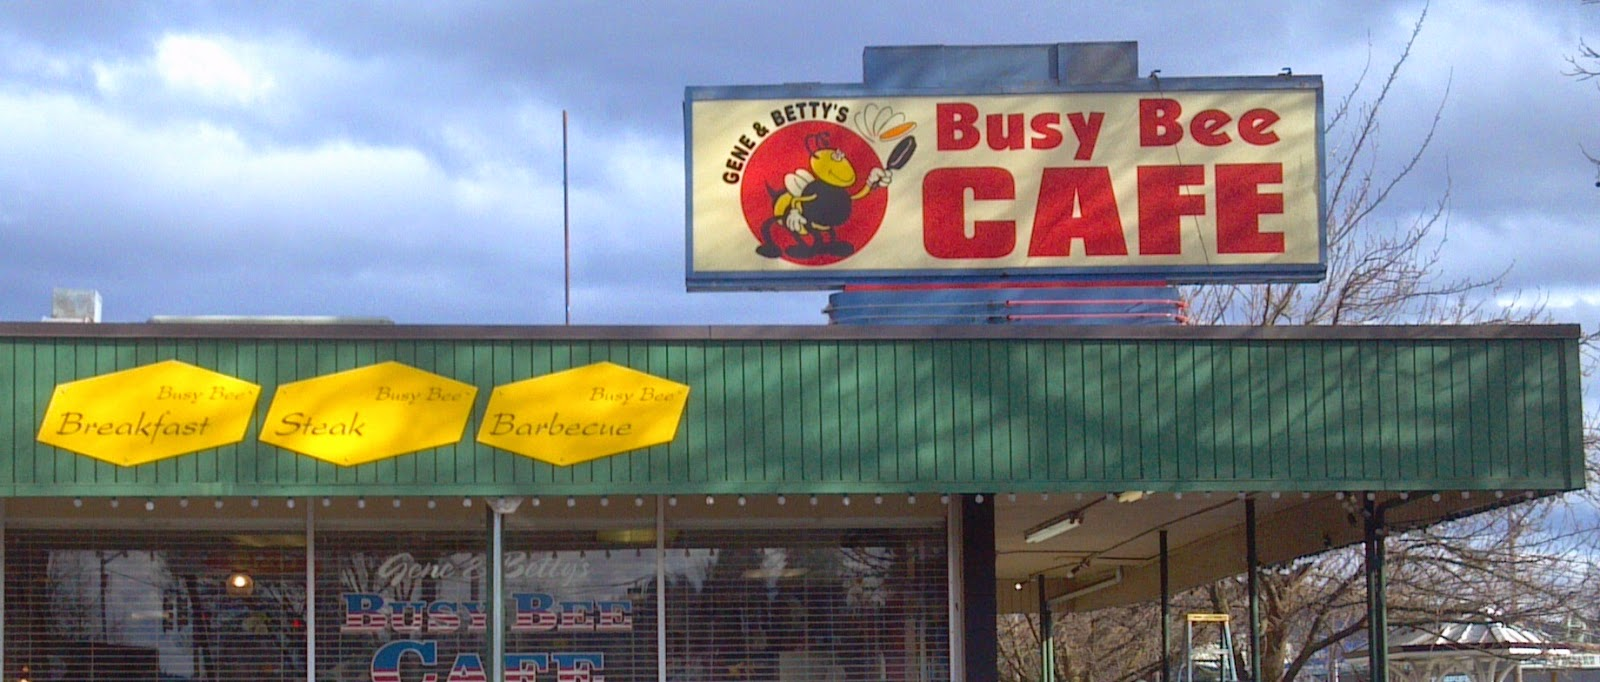 Busy Bee S Is A Favorite Haunt For Locals In Springfield The Breakfast Nuts From Eugene Come Here As Well Located On Main Street